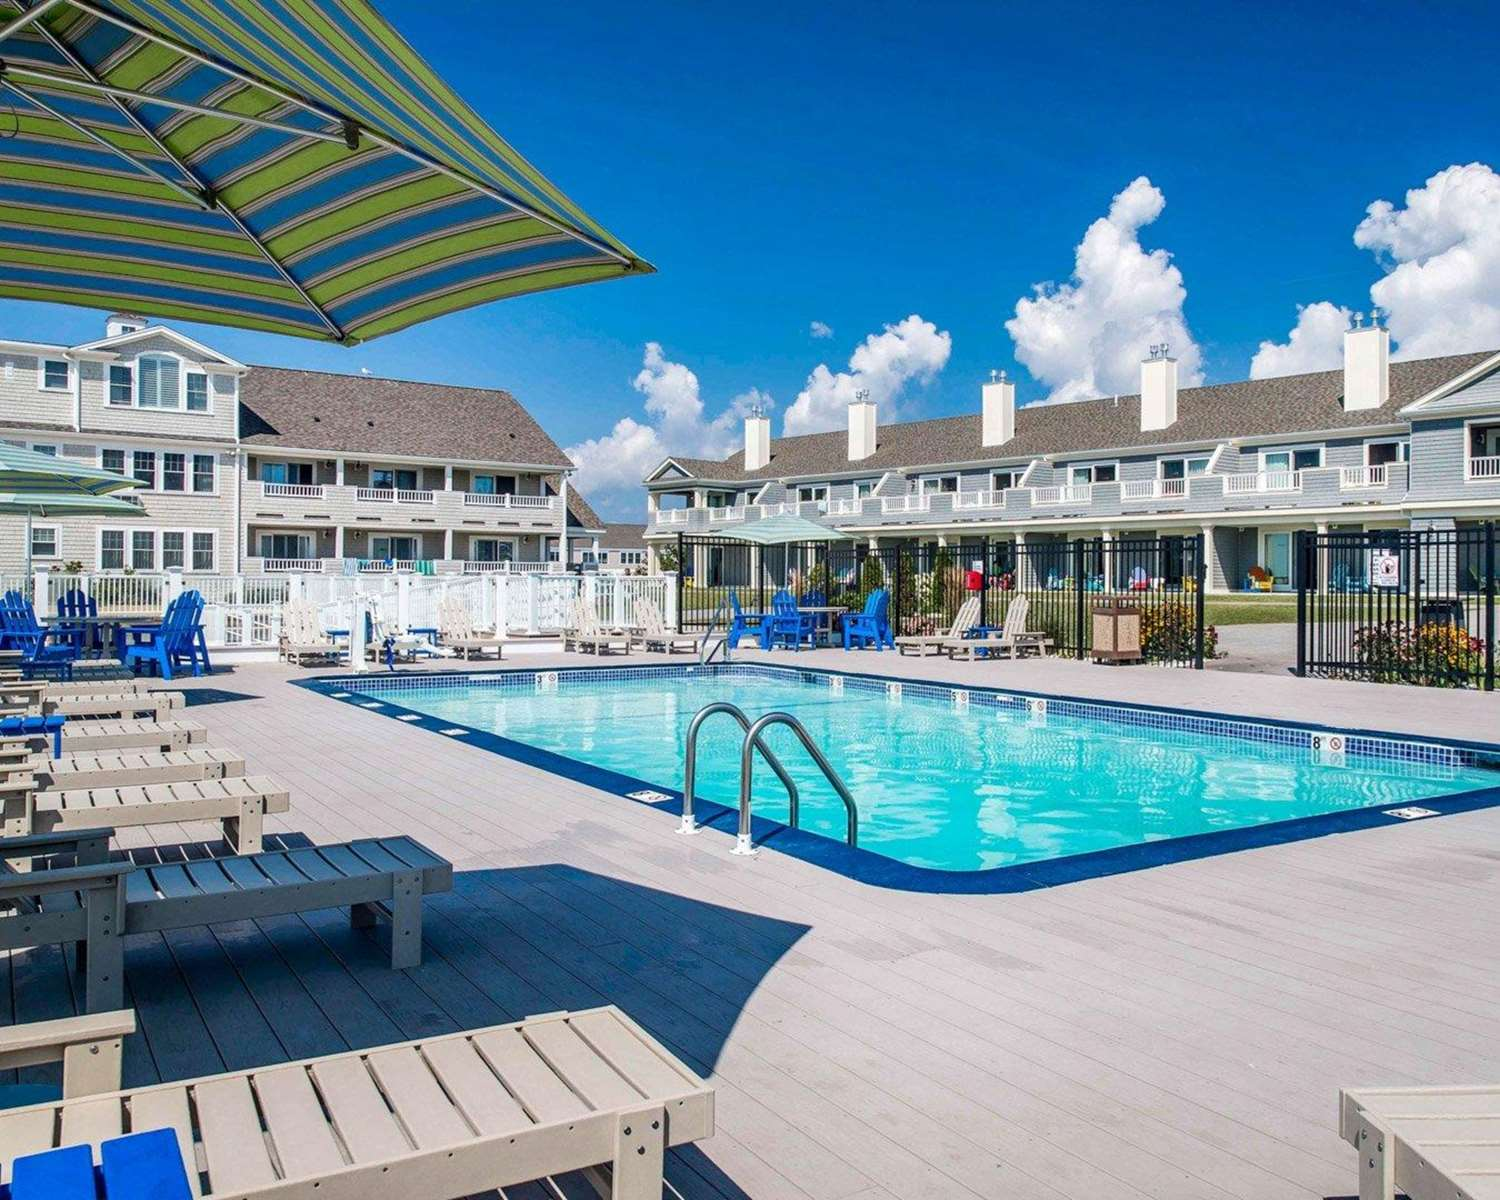 Pool - Soundings Seaside Resort by Bluegreen Vacations